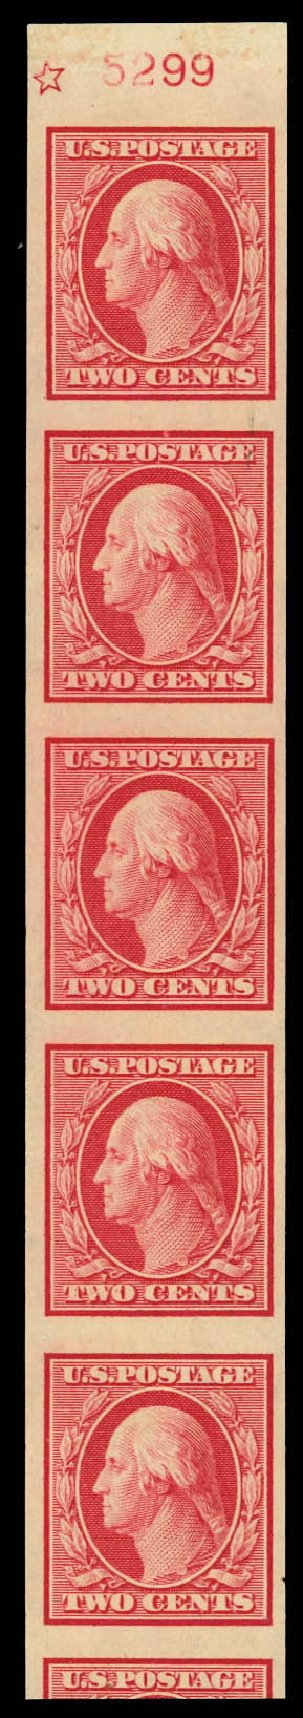 Prices of US Stamp Scott Catalogue 344 - 2c 1909 Washington Imperf. Daniel Kelleher Auctions, Aug 2012, Sale 631, Lot 1113